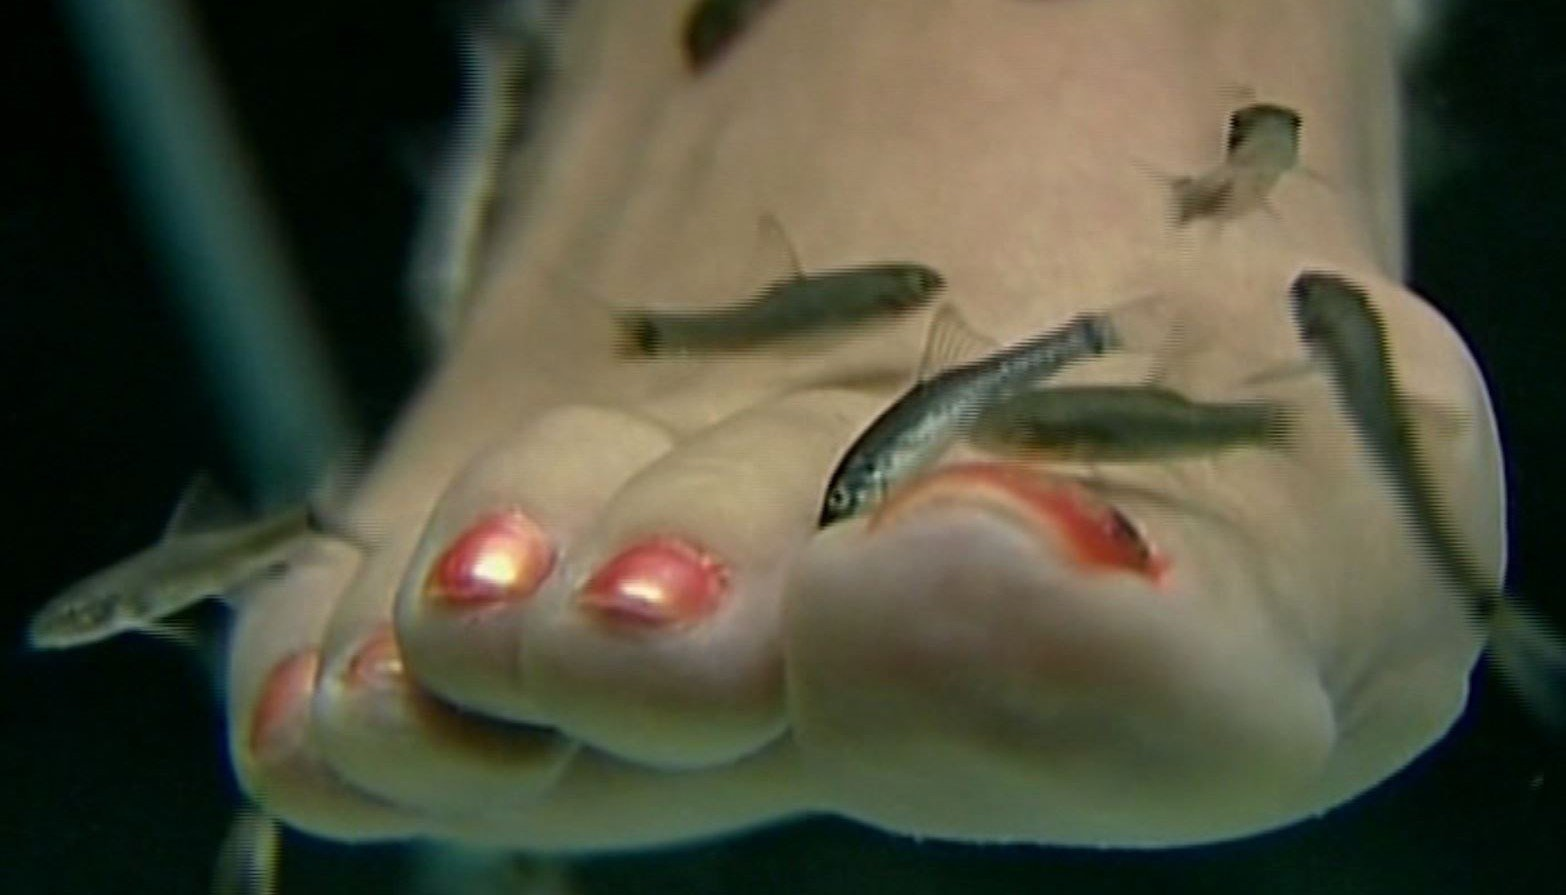 A Woman Lost Her Toenails After A Fish Pedicure